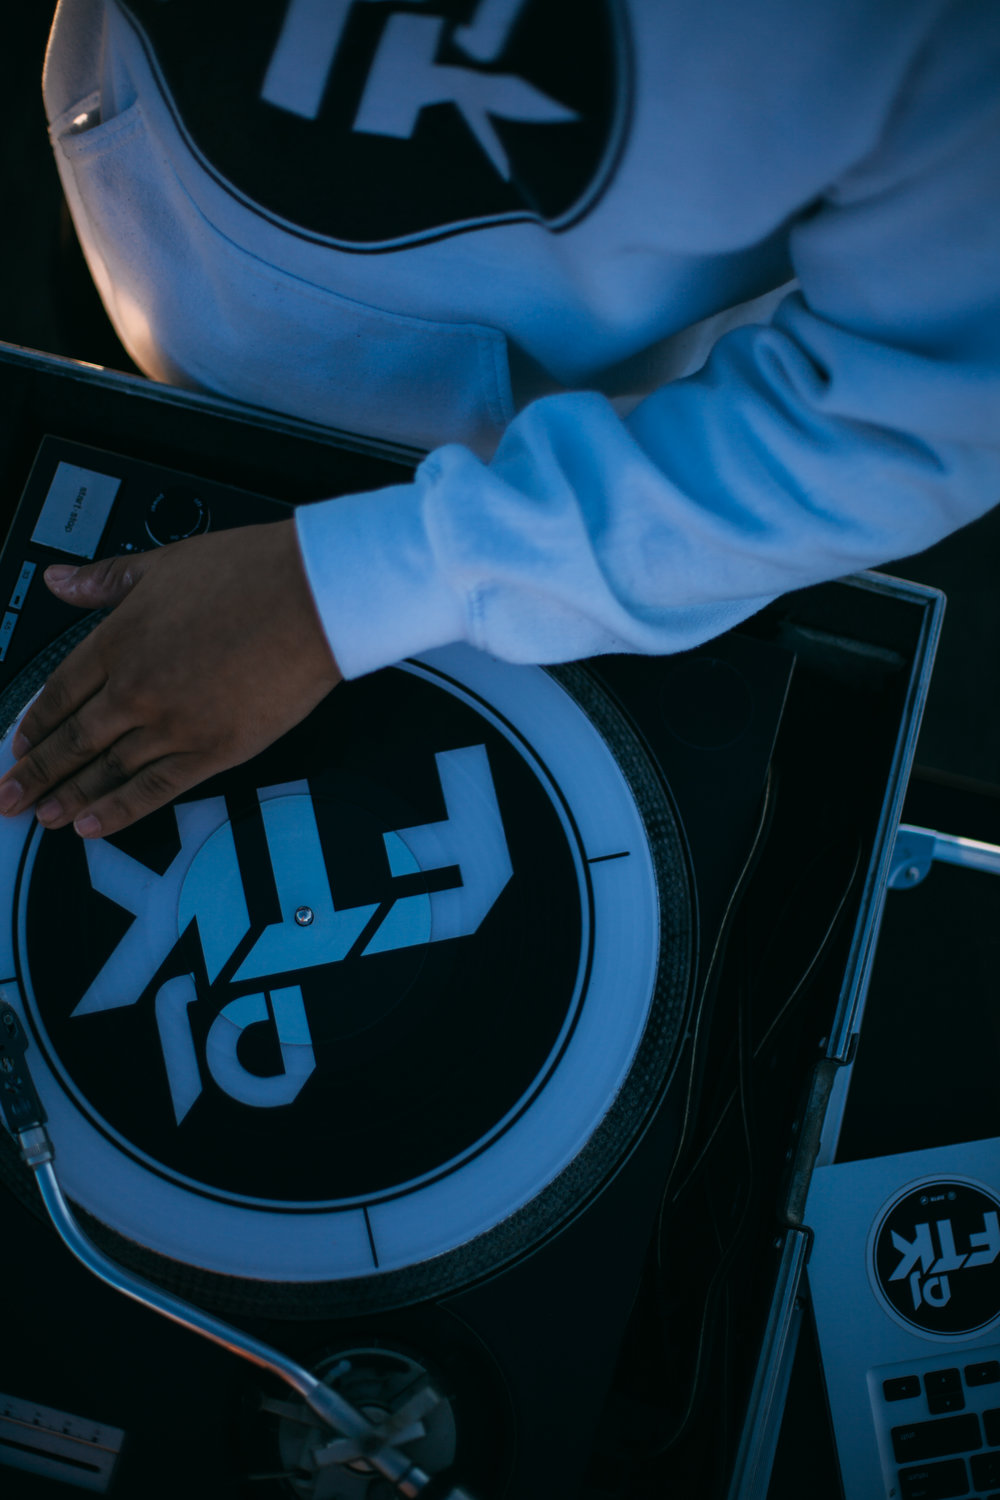 It's deeper than a bassline or a playlist. - It is careful curation and masterful execution. DJ FTK is an artist at his turntables. With an excellent ability to read the crowd, he curates the perfect vibes for every venue and occasion.